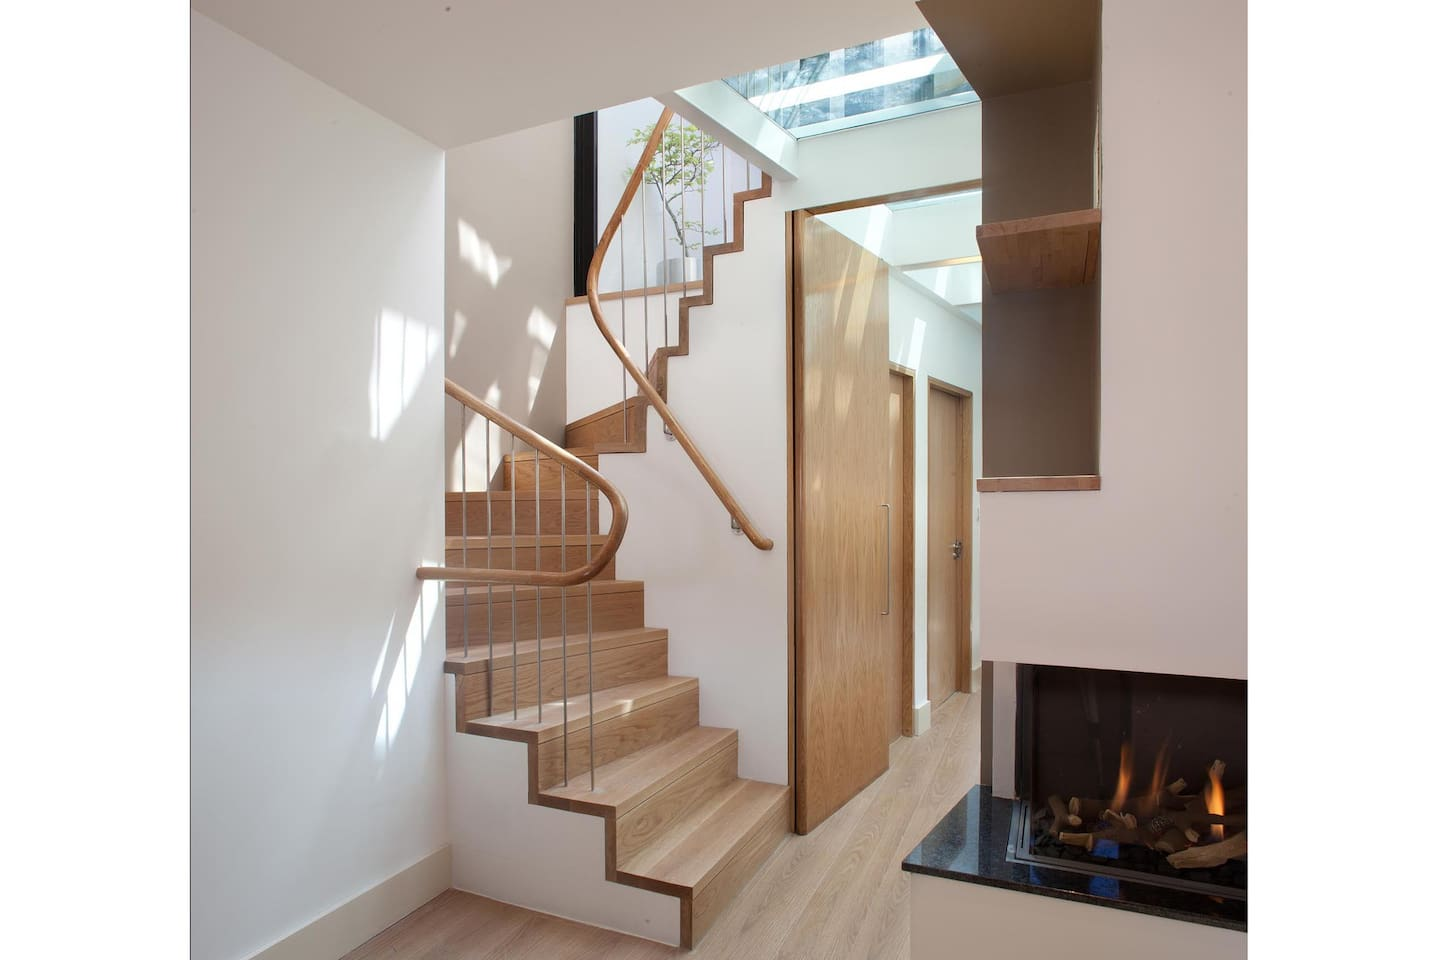 Fireplace, Stairs & Sunlight